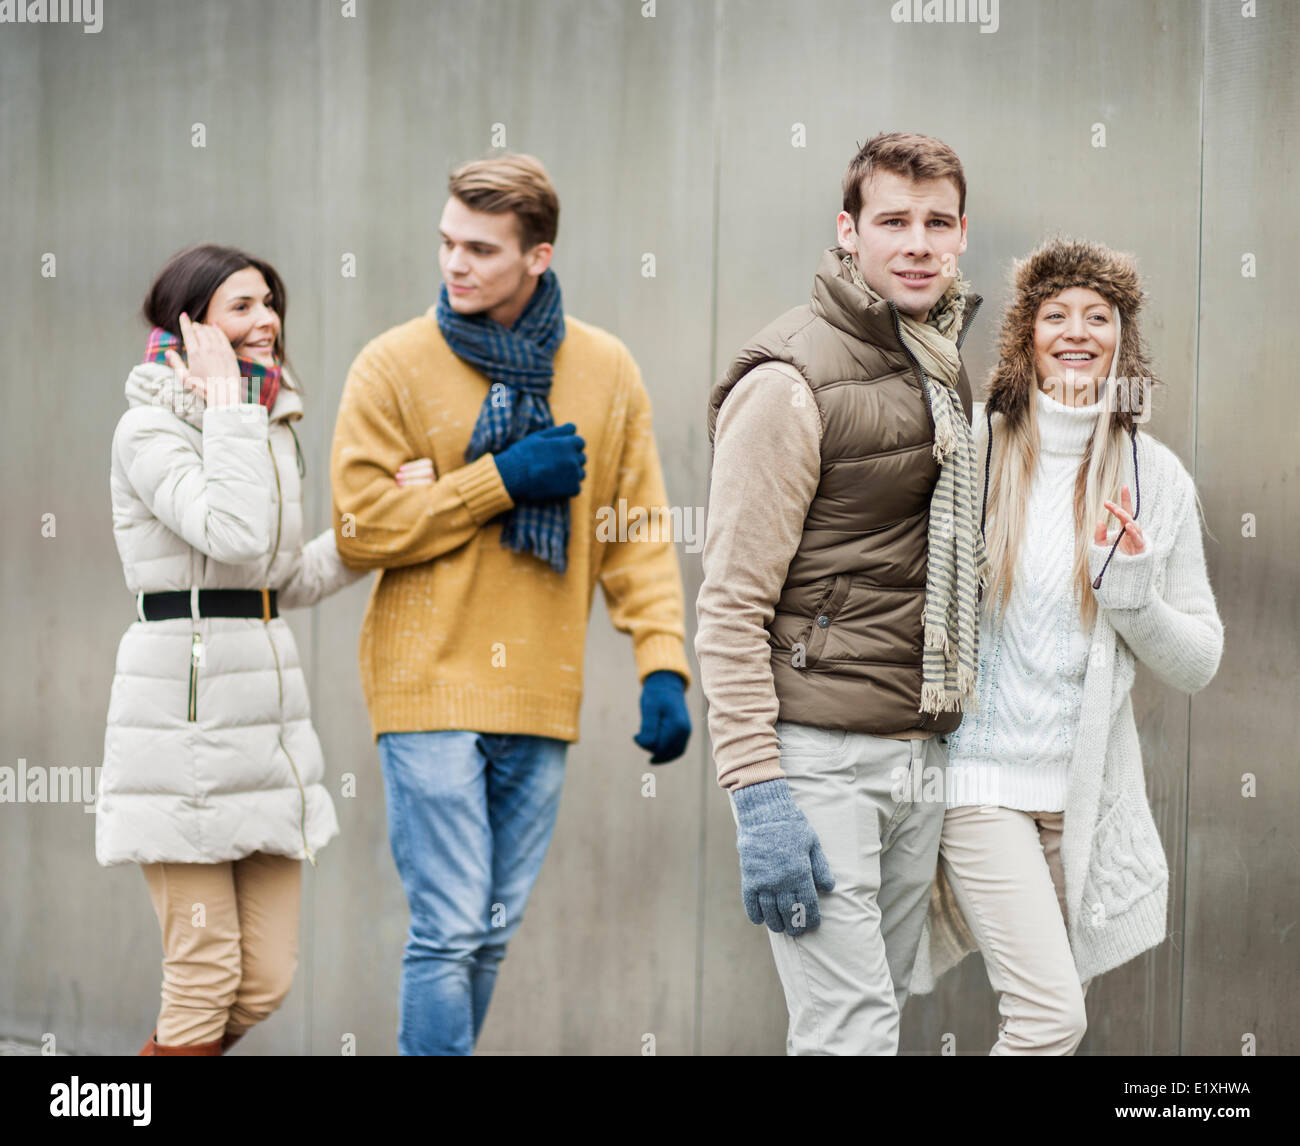 Smiling young couples walking against wall - Stock Image